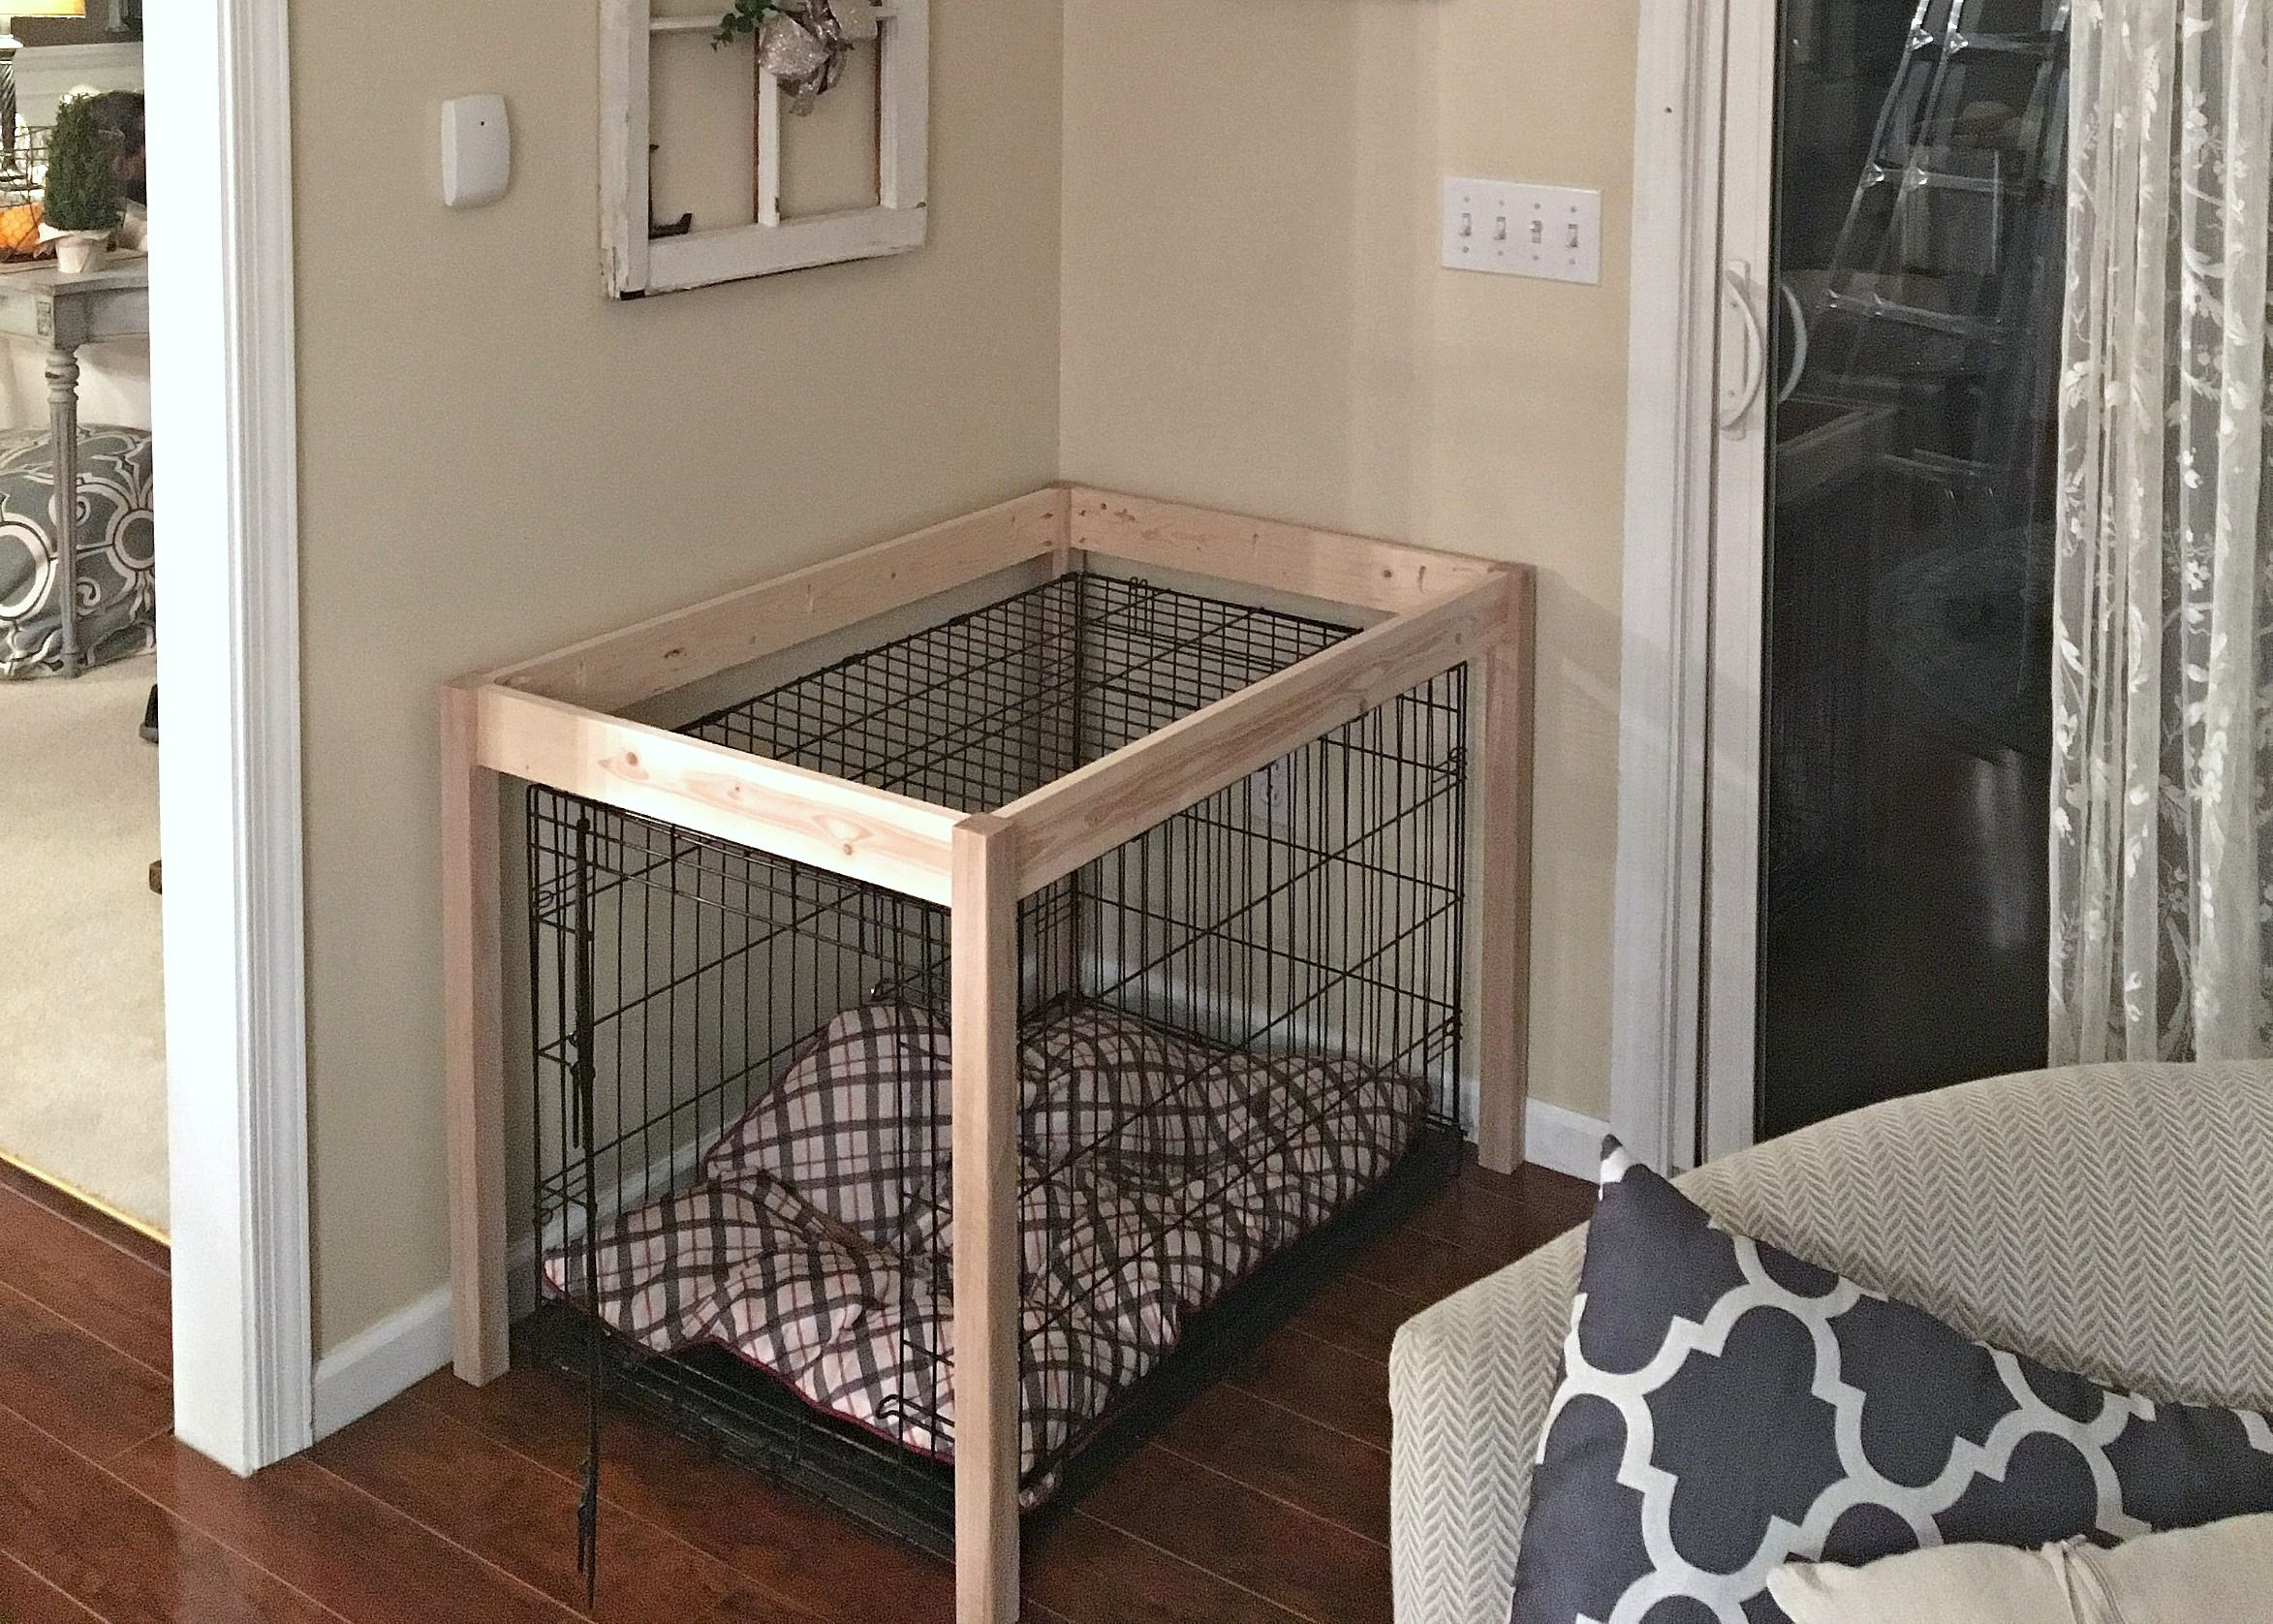 Best 25 Diy dog crate ideas on Pinterest